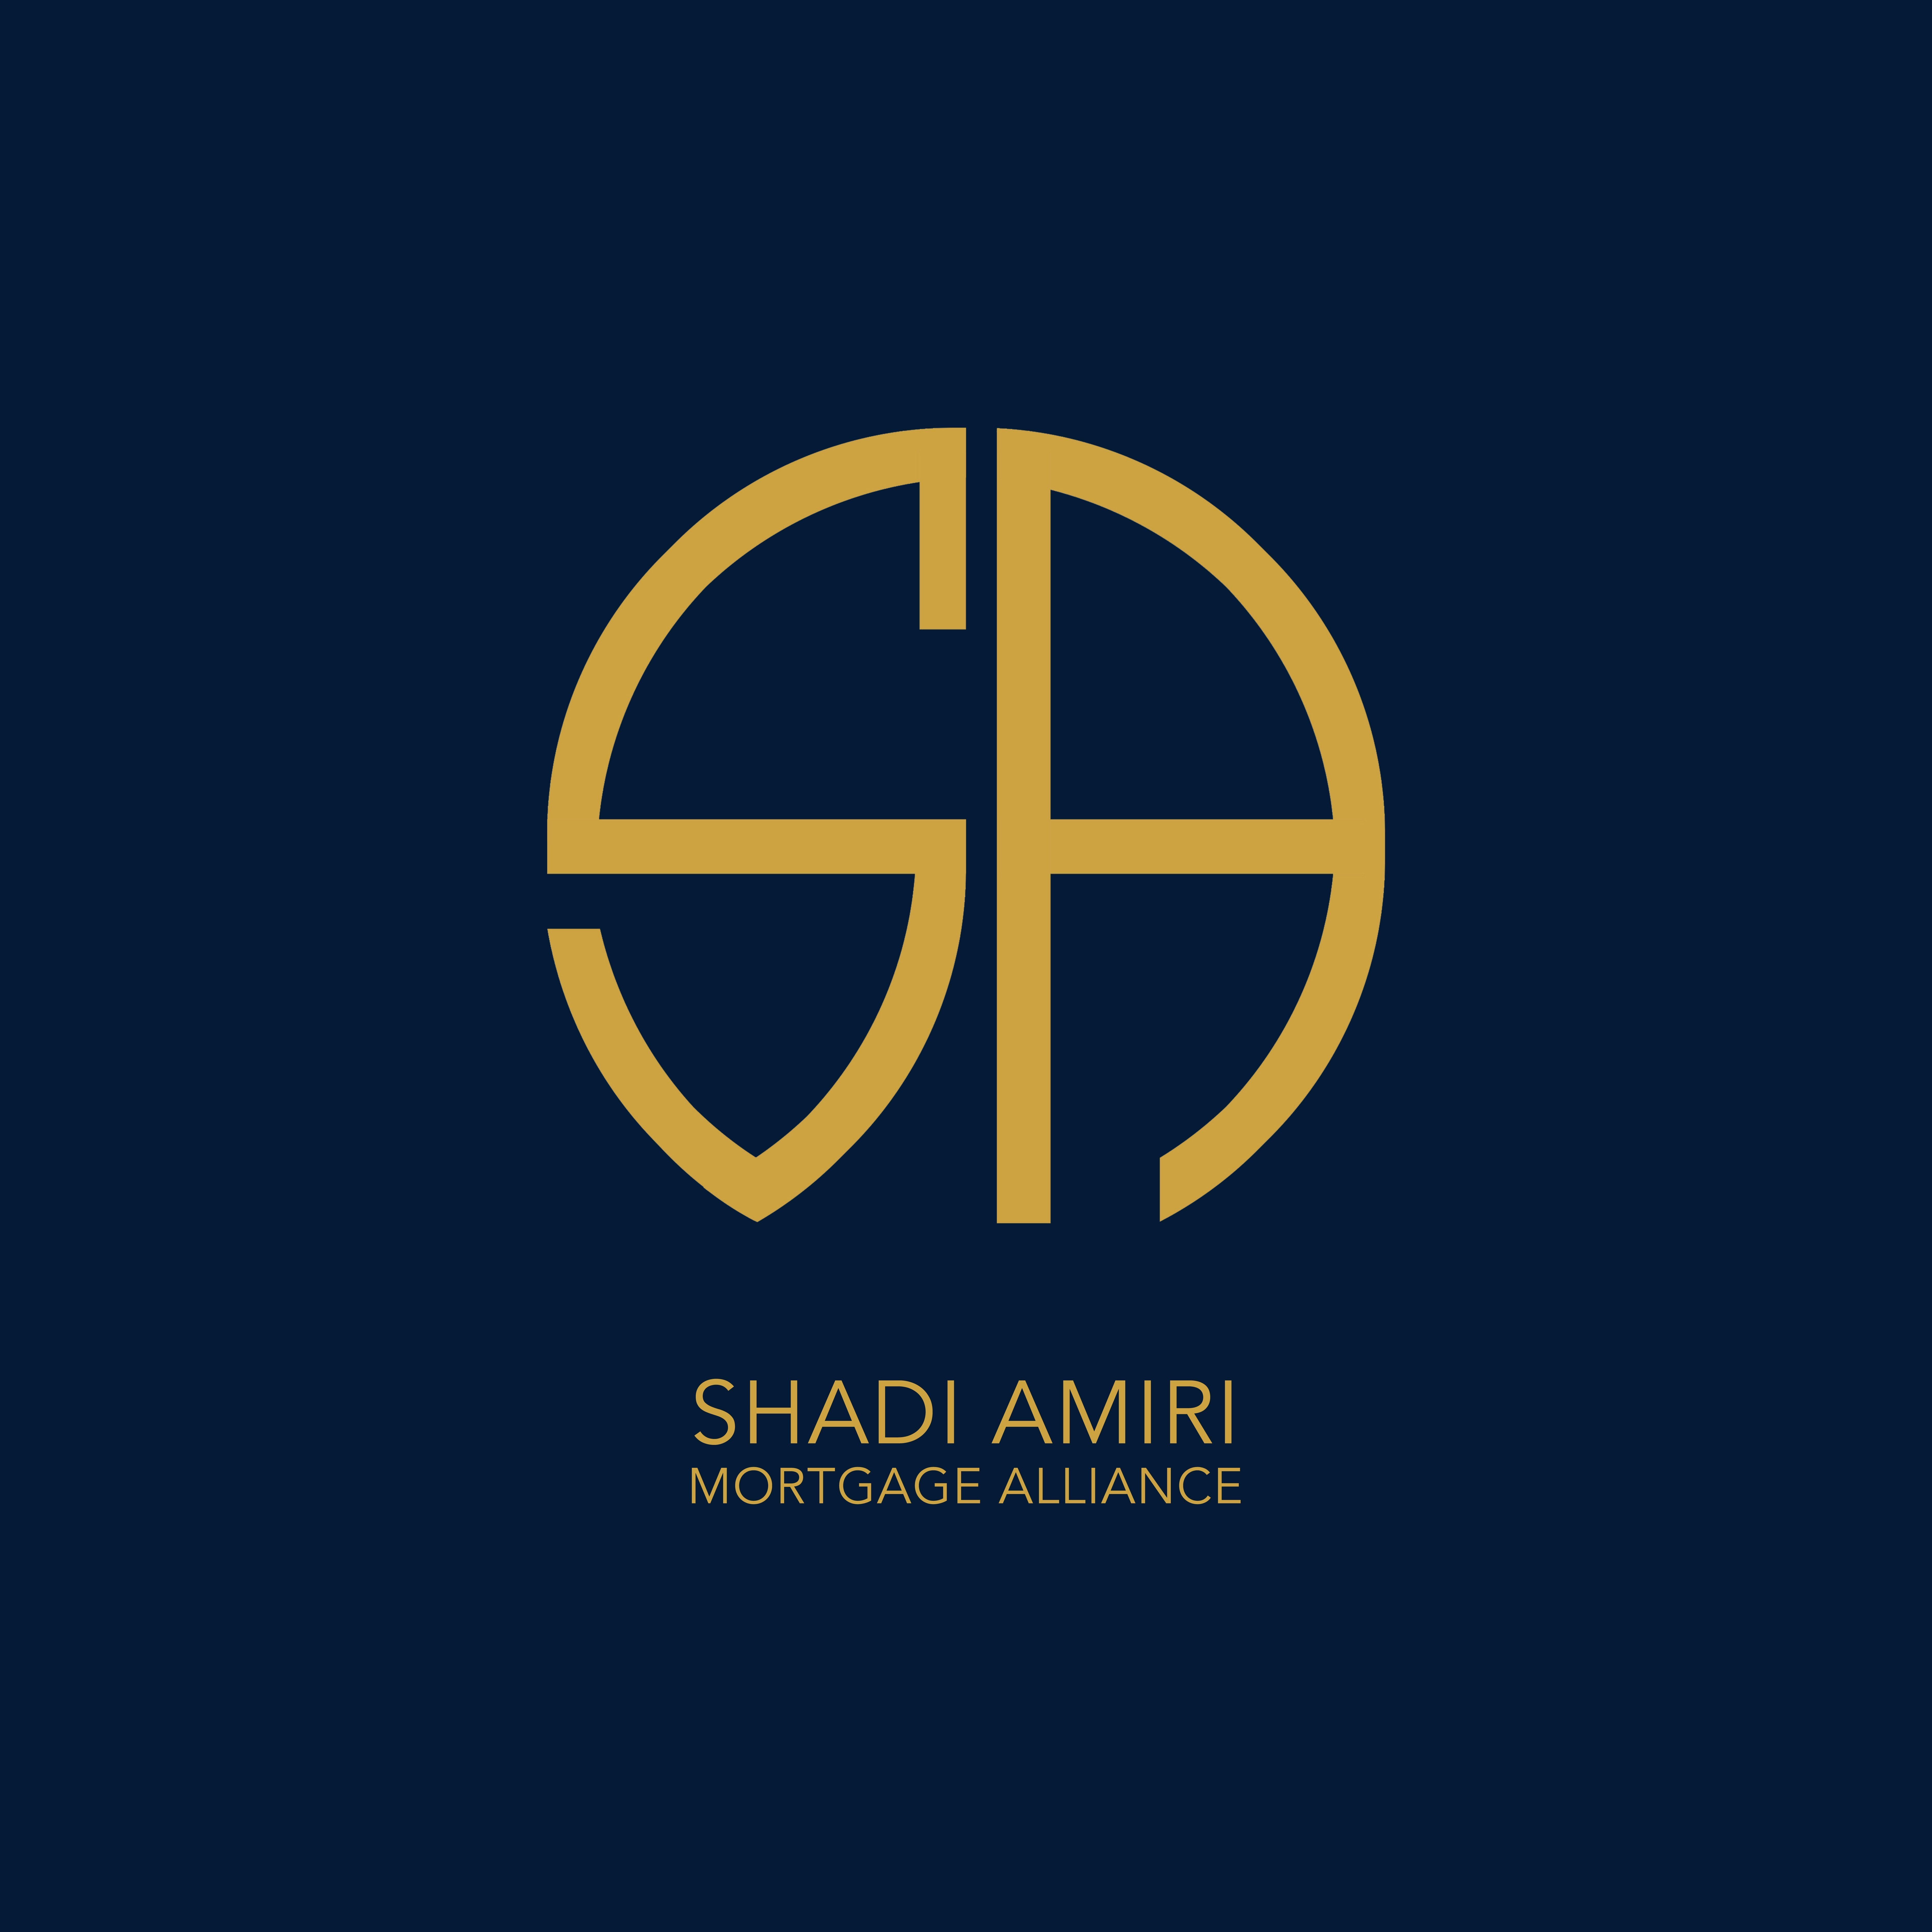 Shadi Mortgage Alliance Logo Design - PIC2MOTION